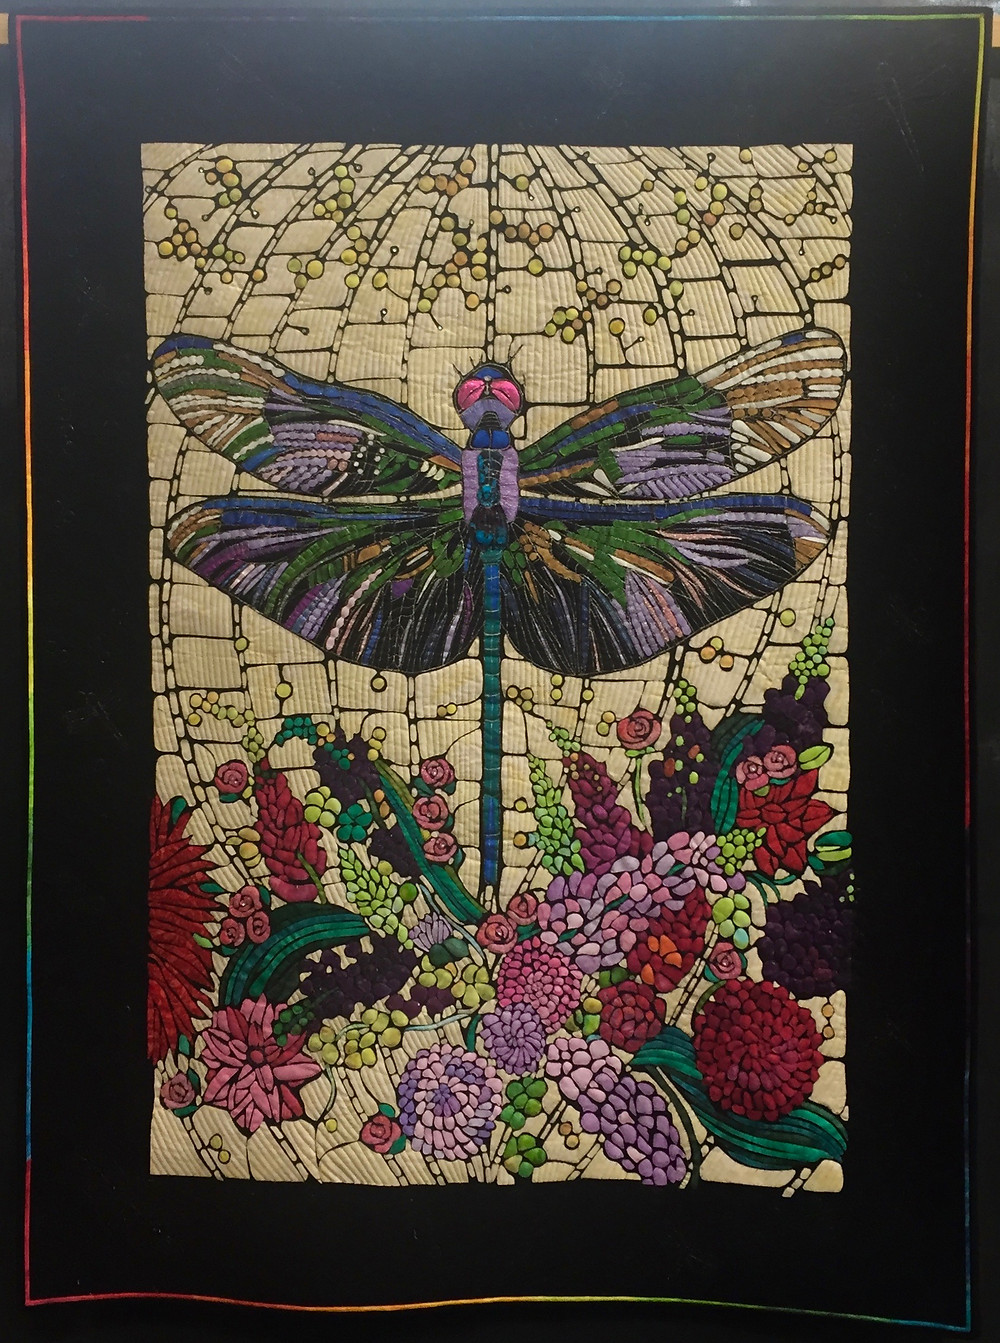 Festival of Quilts - The DragonFly by Jeanette Orr (Art Quilt)